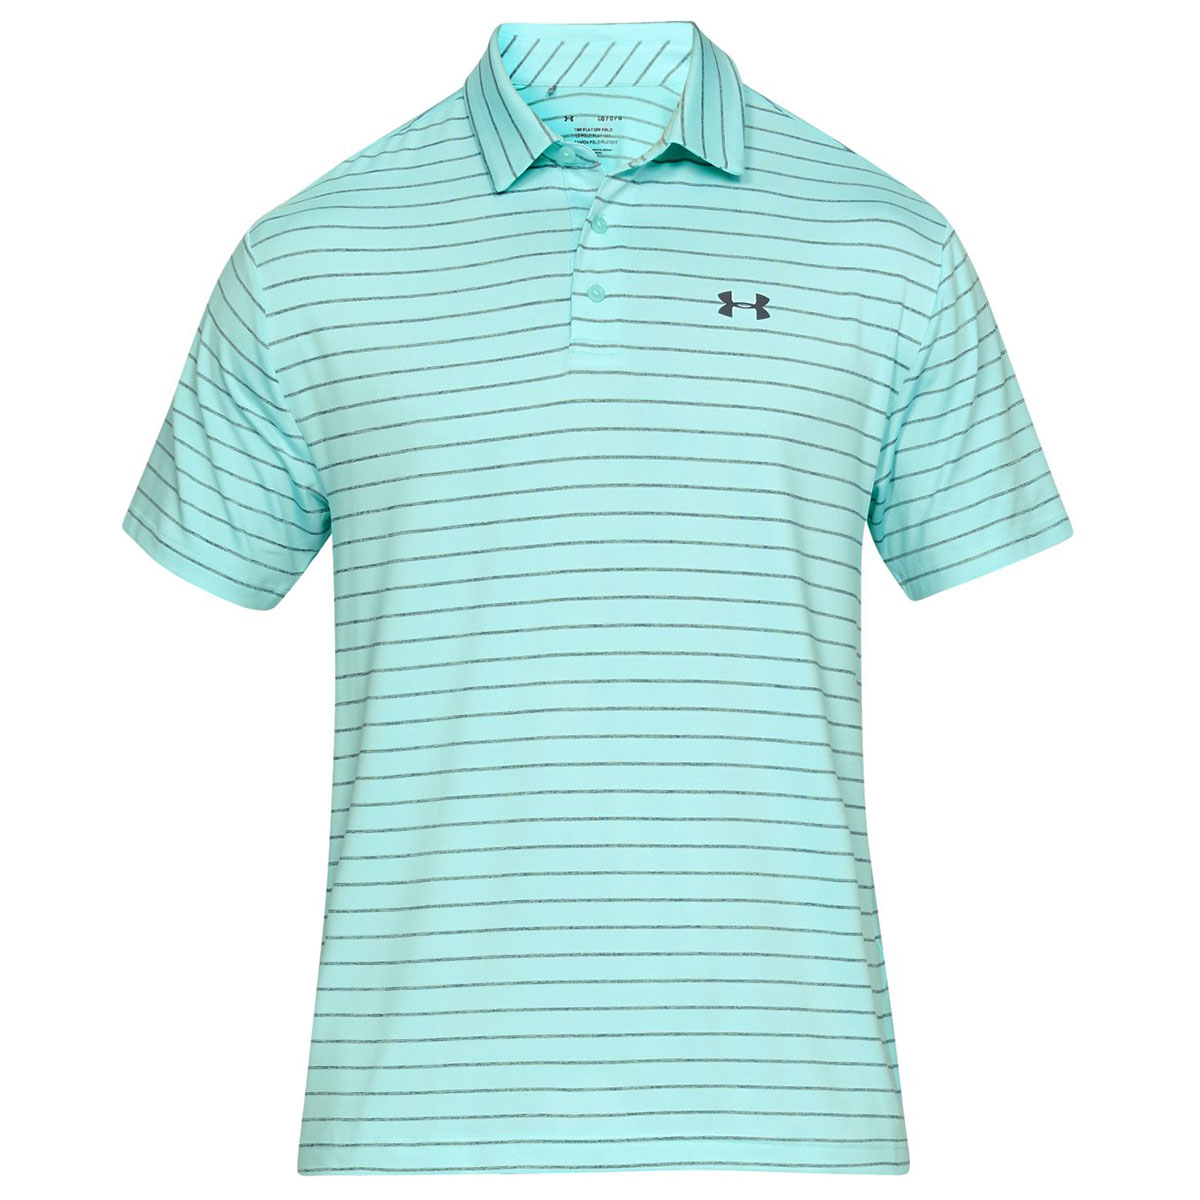 Under-Armour-Mens-2019-Playoff-Polo-2-0-Breathable-Light-Stretch-Polo-Shirt thumbnail 86